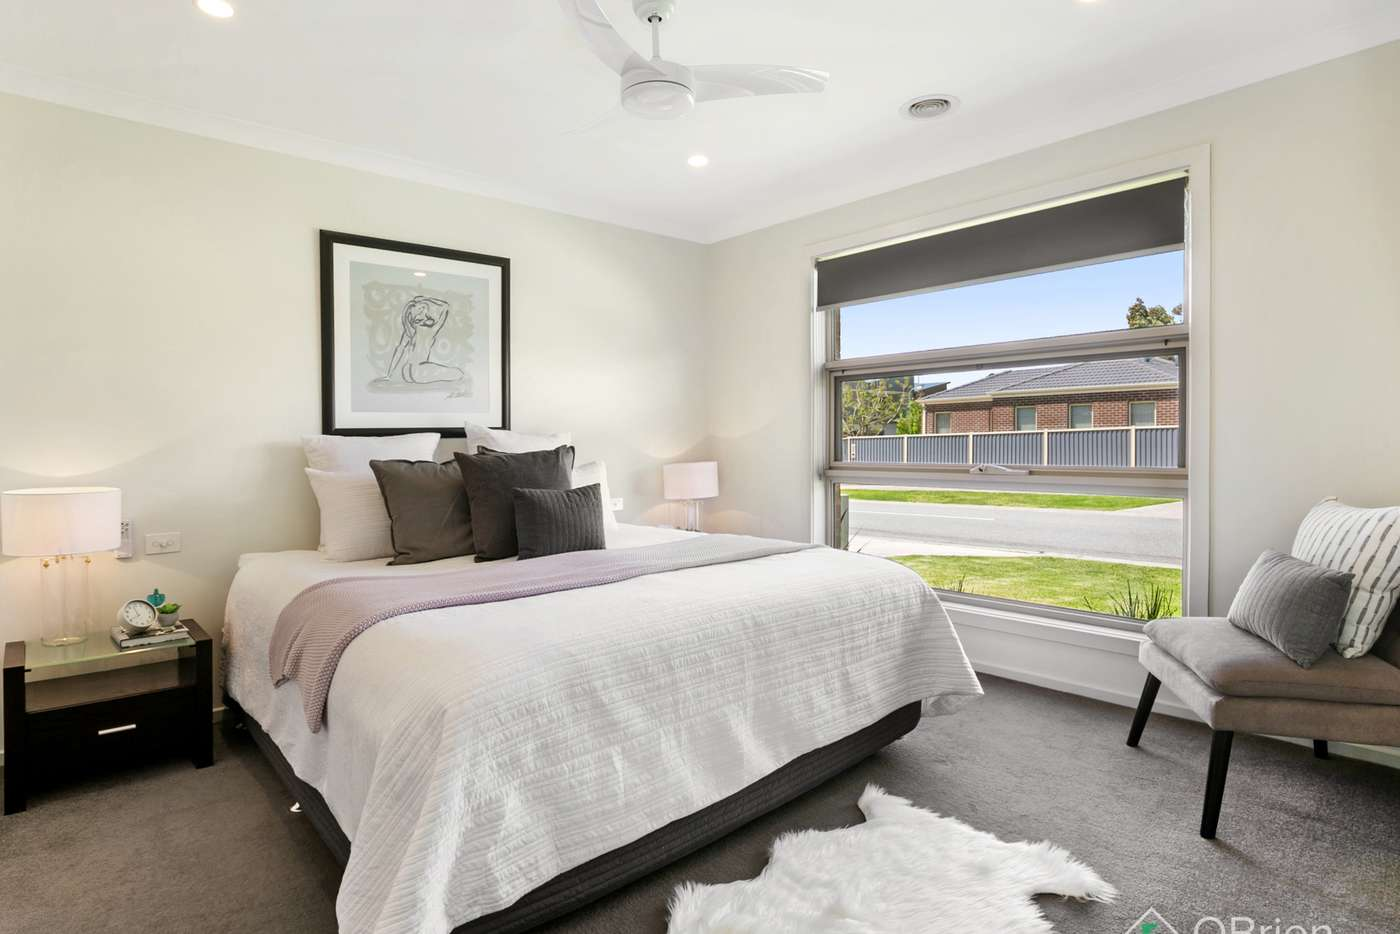 Sixth view of Homely house listing, 4 Gonis Crescent, Carrum Downs VIC 3201